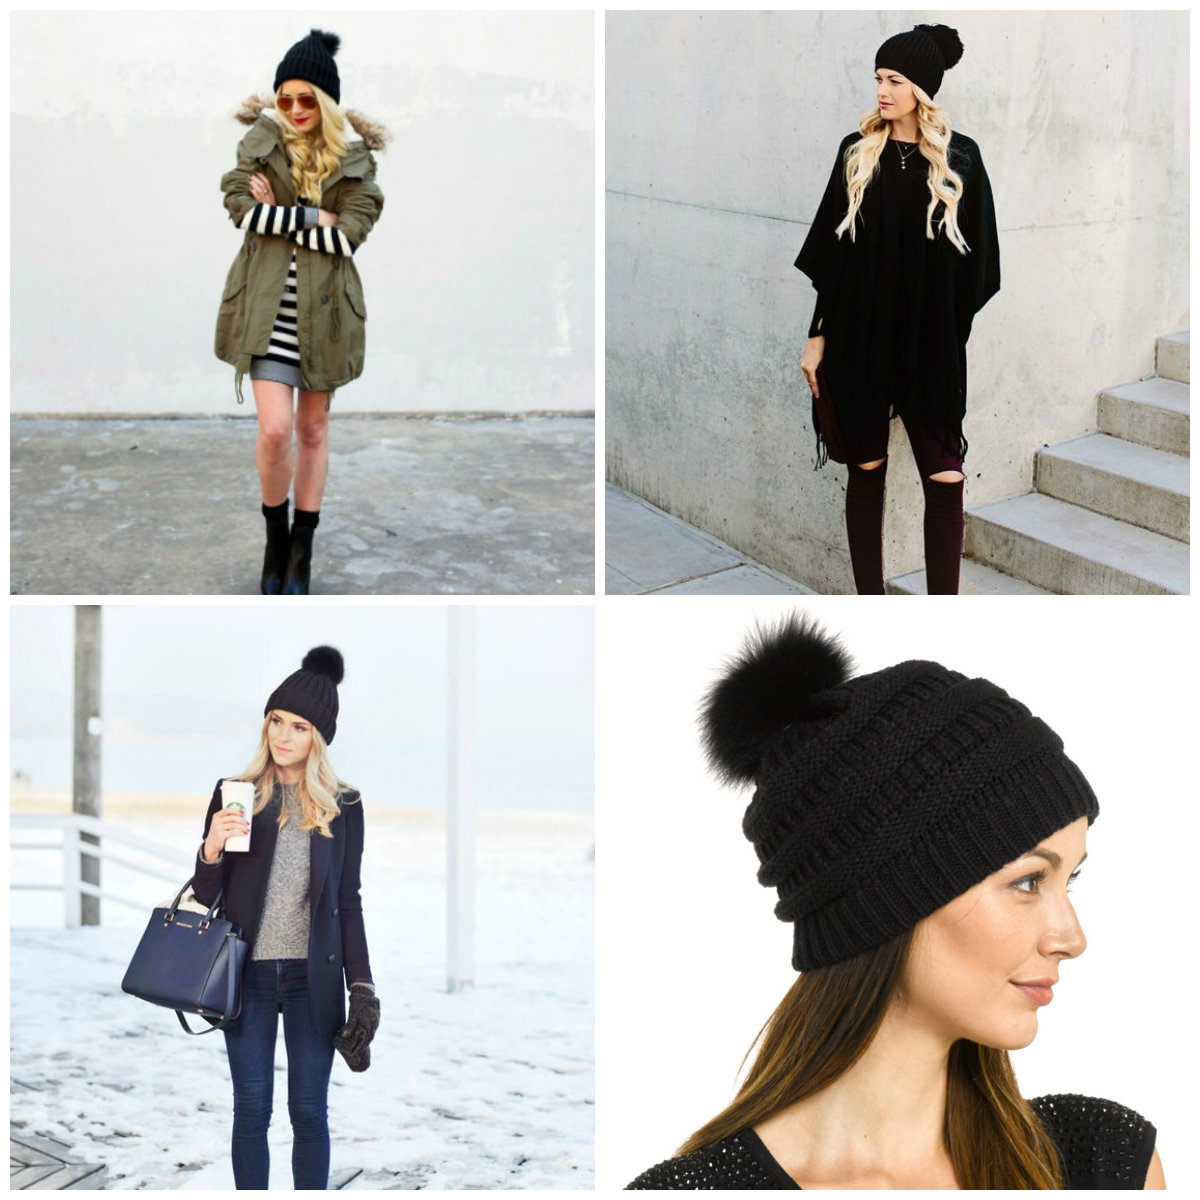 d11d47bc8ef40 2017 Most Coveted Hat - Fur Pom Pom Hat